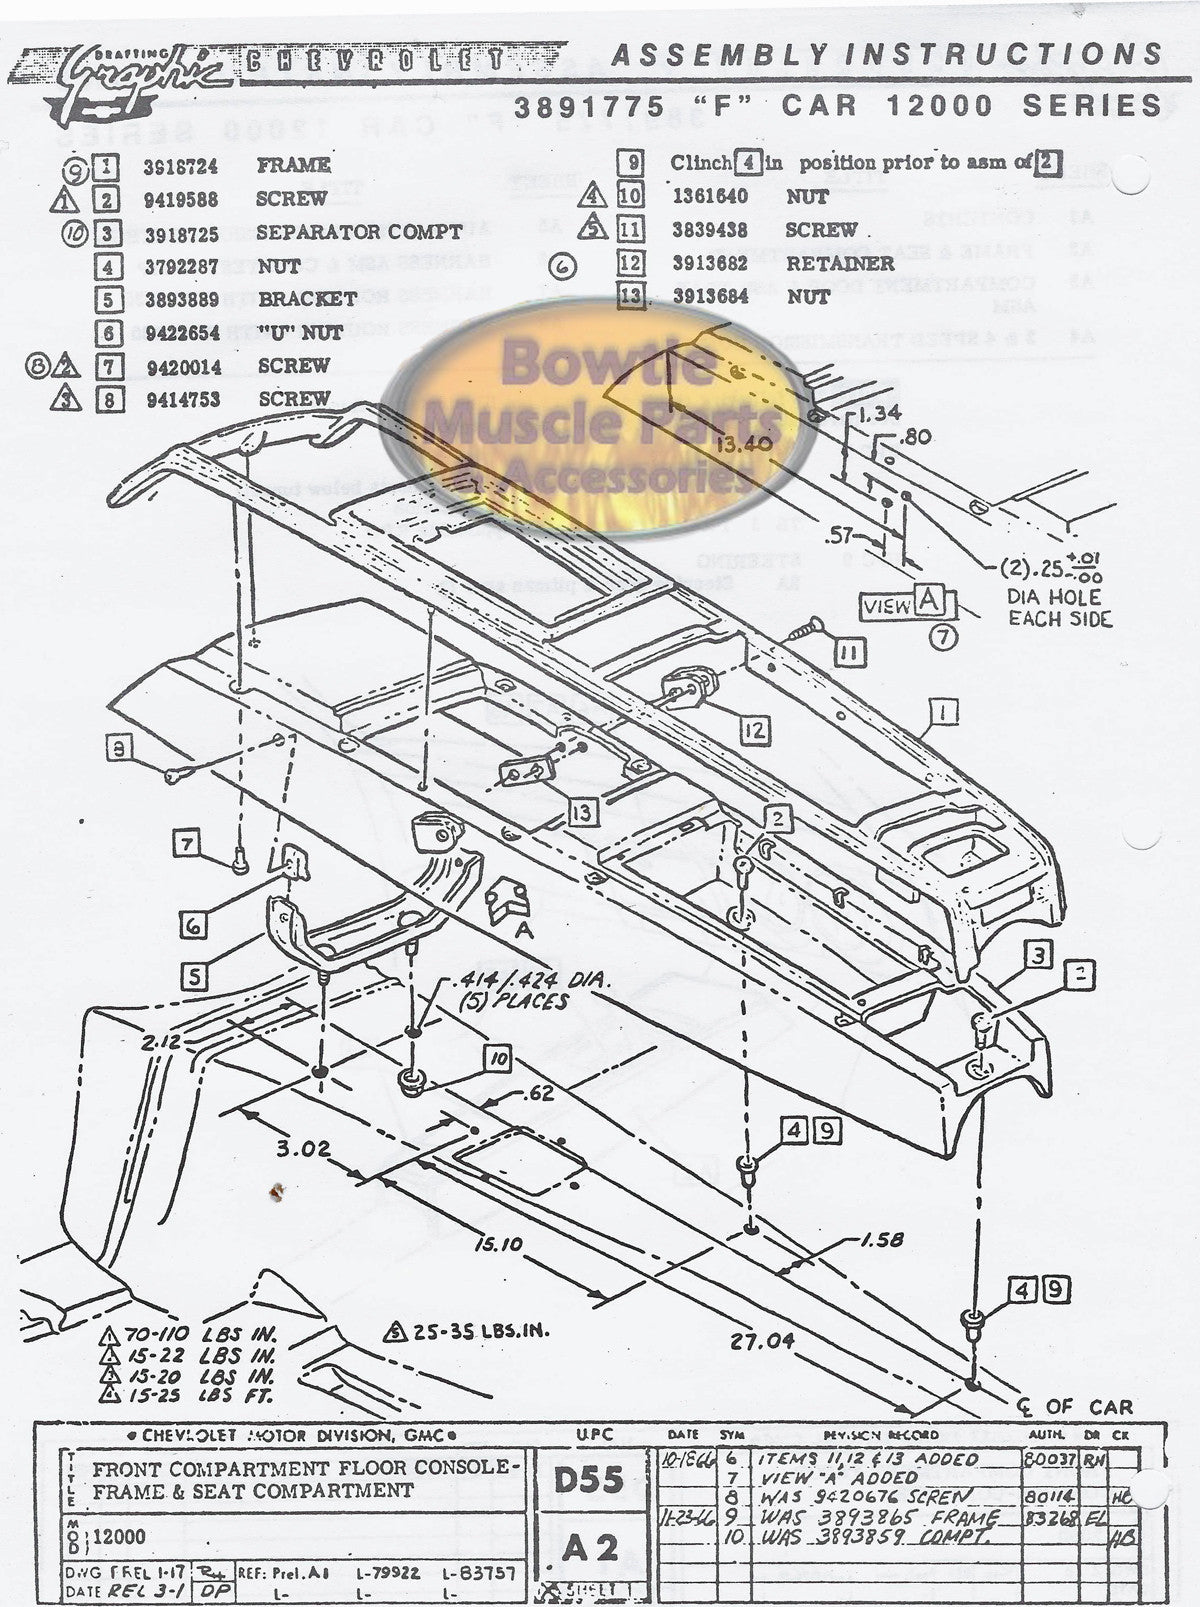 1967 67 camaro factory assembly manual z28 ss rs 418 pages rh bowtiemuscleparts com 68 camaro assembly manual 69 Camaro